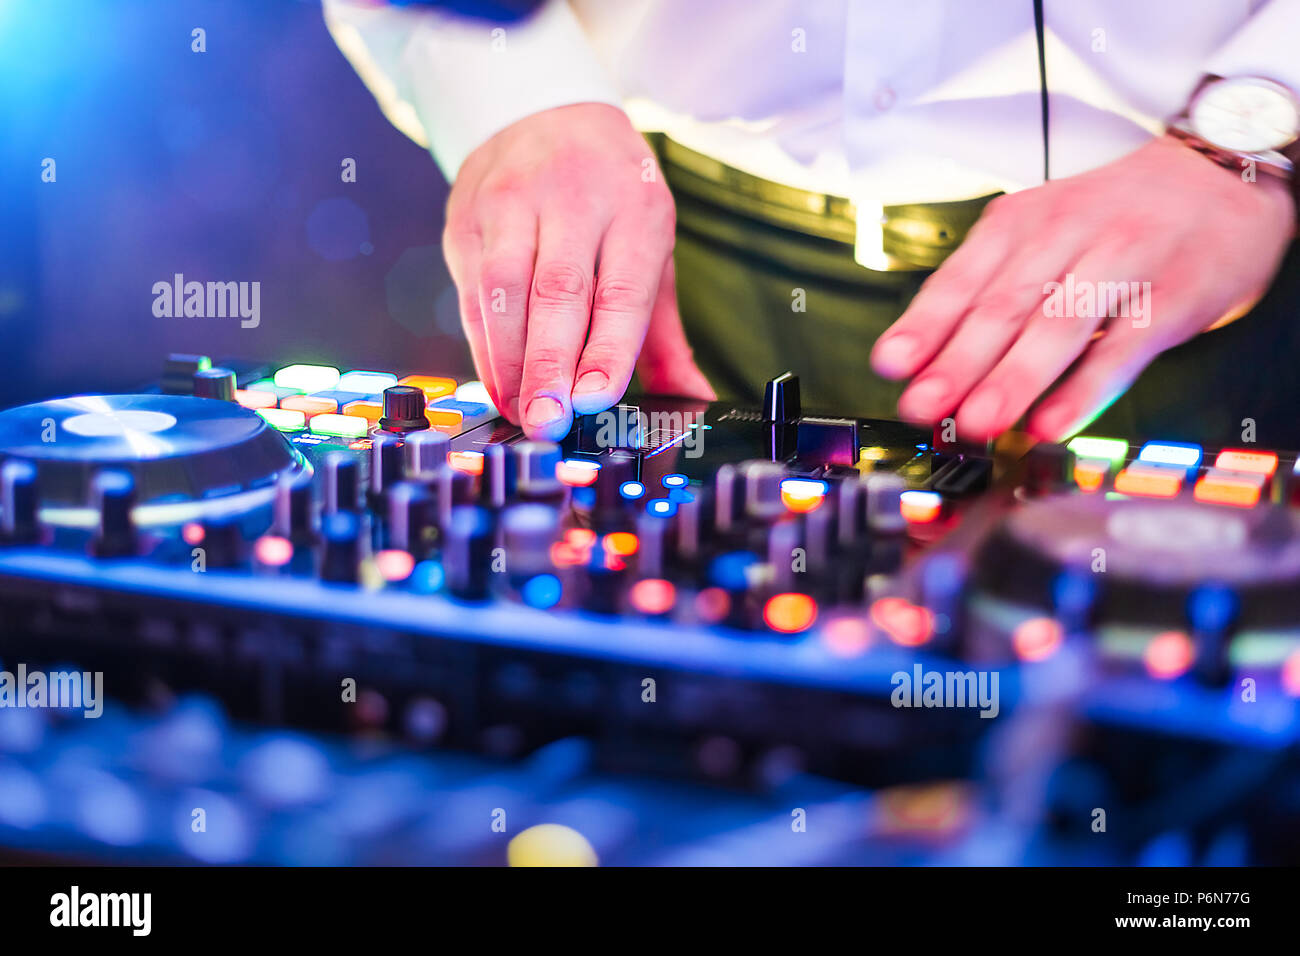 dj hands close up close up record stock photos dj hands close up